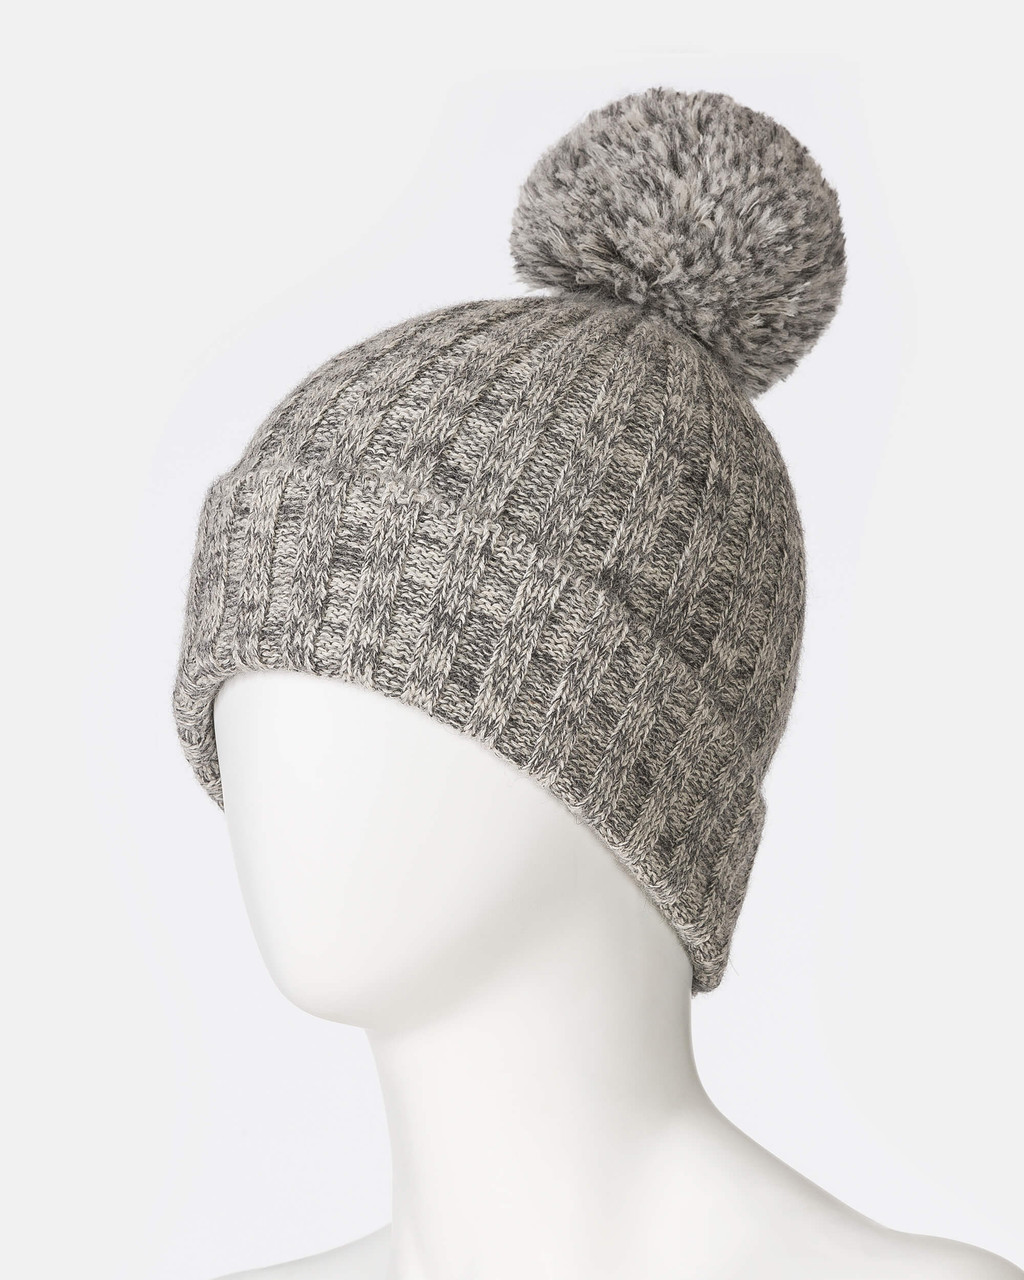 alicia adams alpaca davos hat, womens beanie hat, alpaca beanie hat,  all fair-trade made hat, alpaca vs cashmere, dark grey alpaca hat